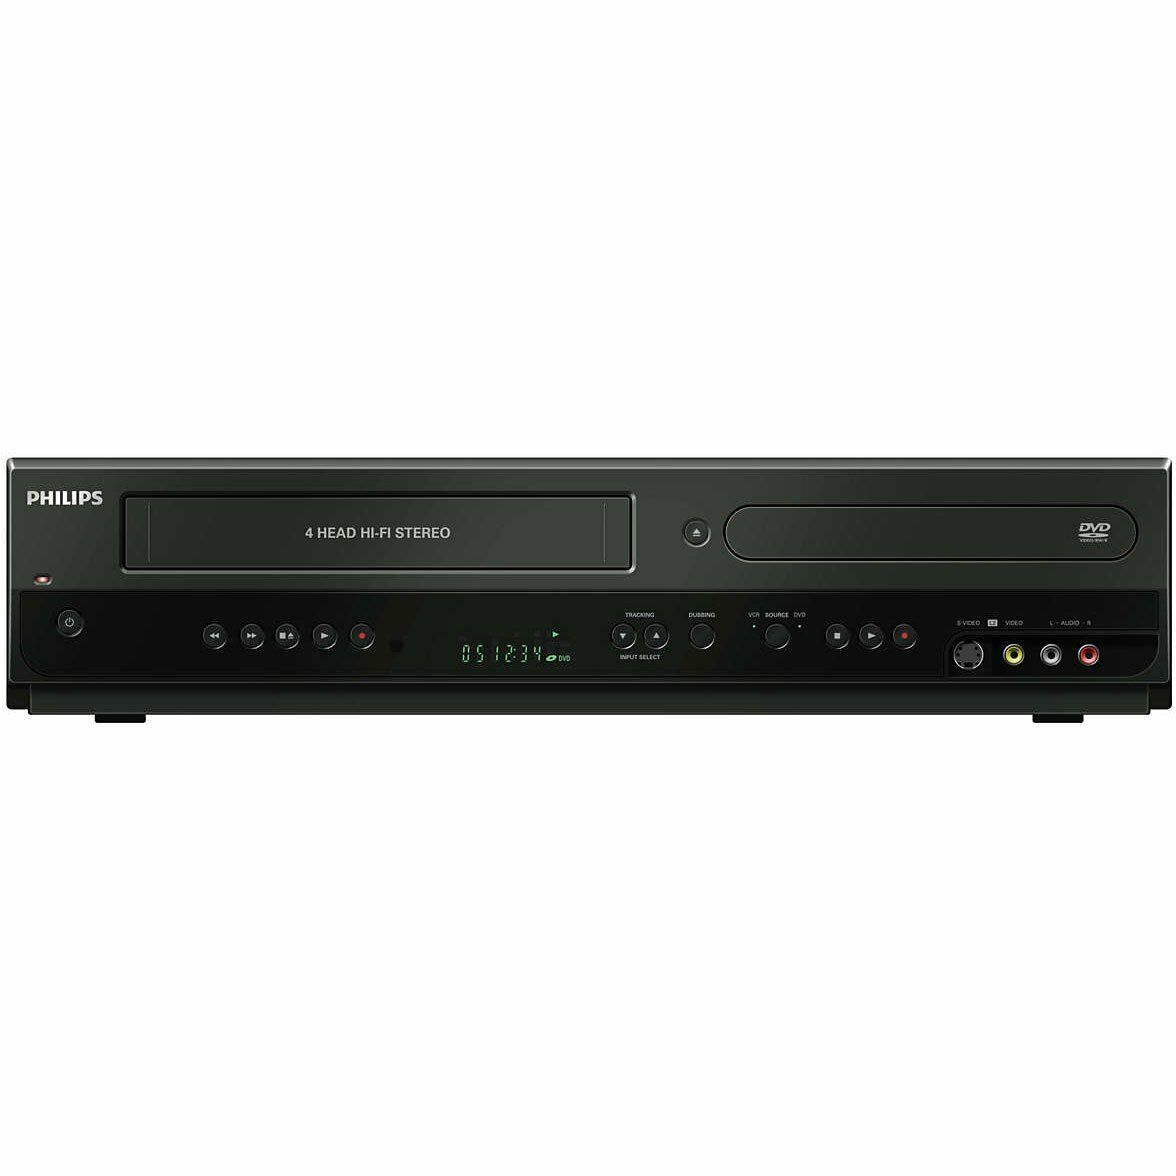 philips combo dvd vcr recorder dvdr3385v f7 vhs hdmi. Black Bedroom Furniture Sets. Home Design Ideas